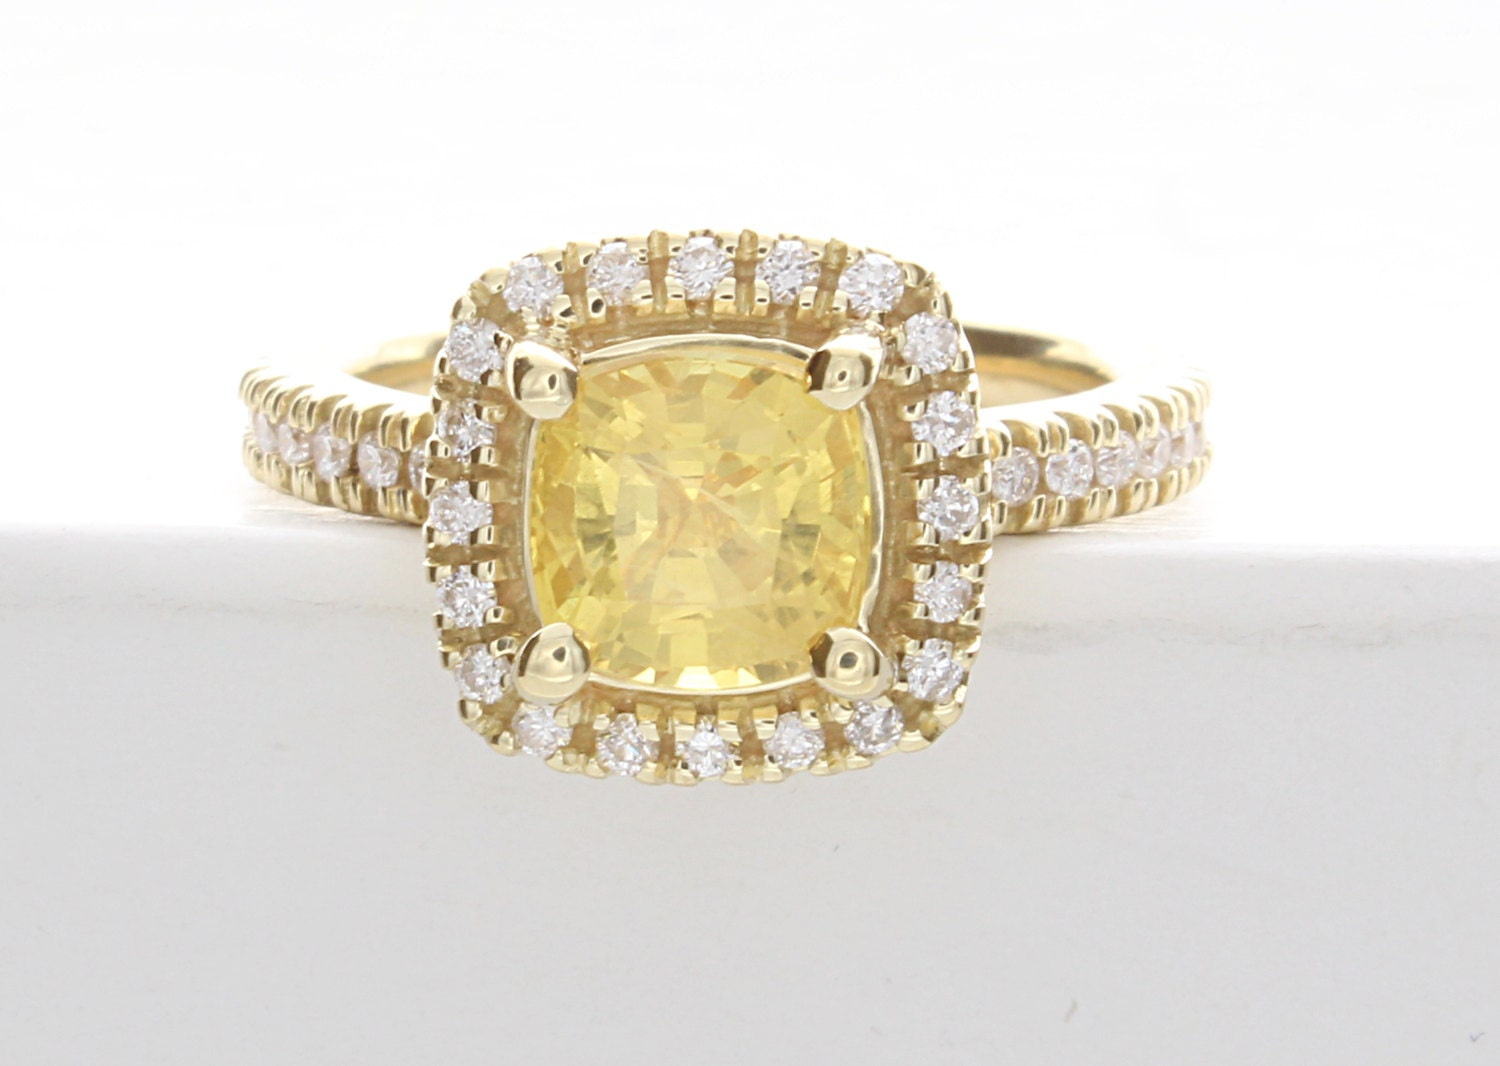 Yellow Sapphire Engagement Ring Cushion Cut Sapphire. Satc Rings. Style Gold Engagement Rings. Chala Ring Wedding Rings. Dramatic Engagement Wedding Rings. Seashells Wedding Rings. Royal Rings. Costume Jewelry Wedding Rings. Mens Charcoal Wedding Rings